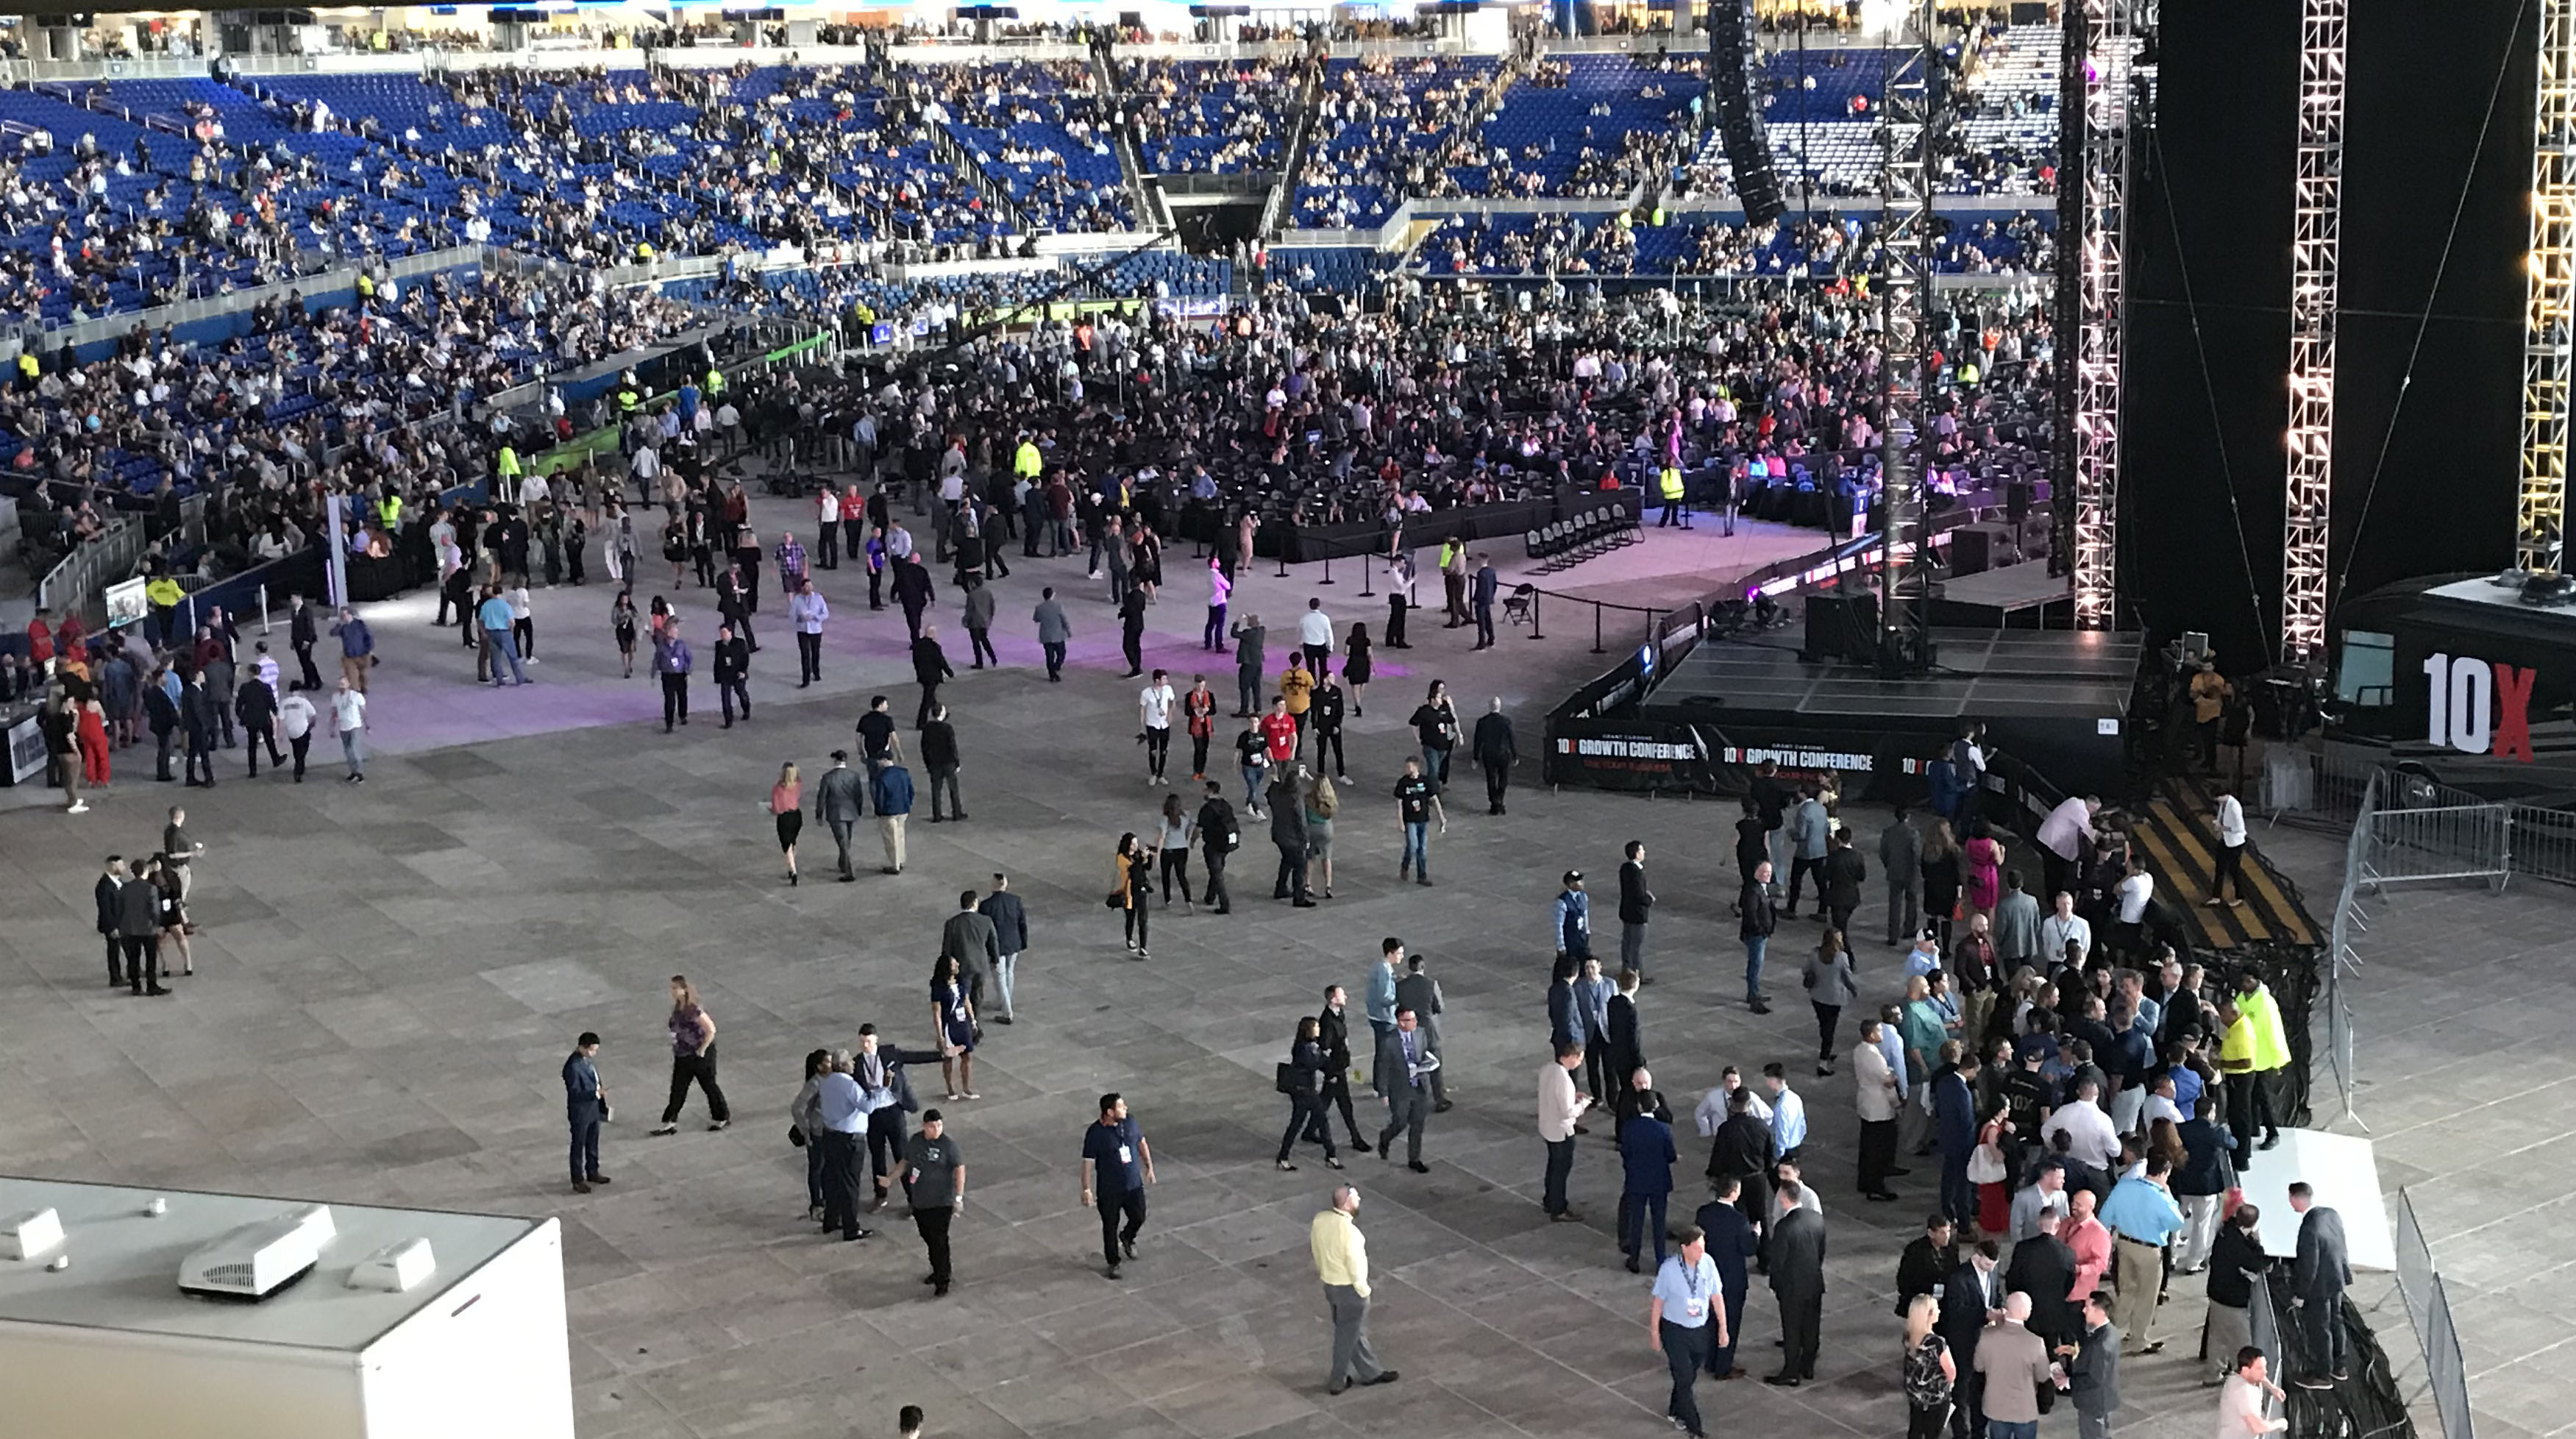 10x-crowd-gathering-vip-section